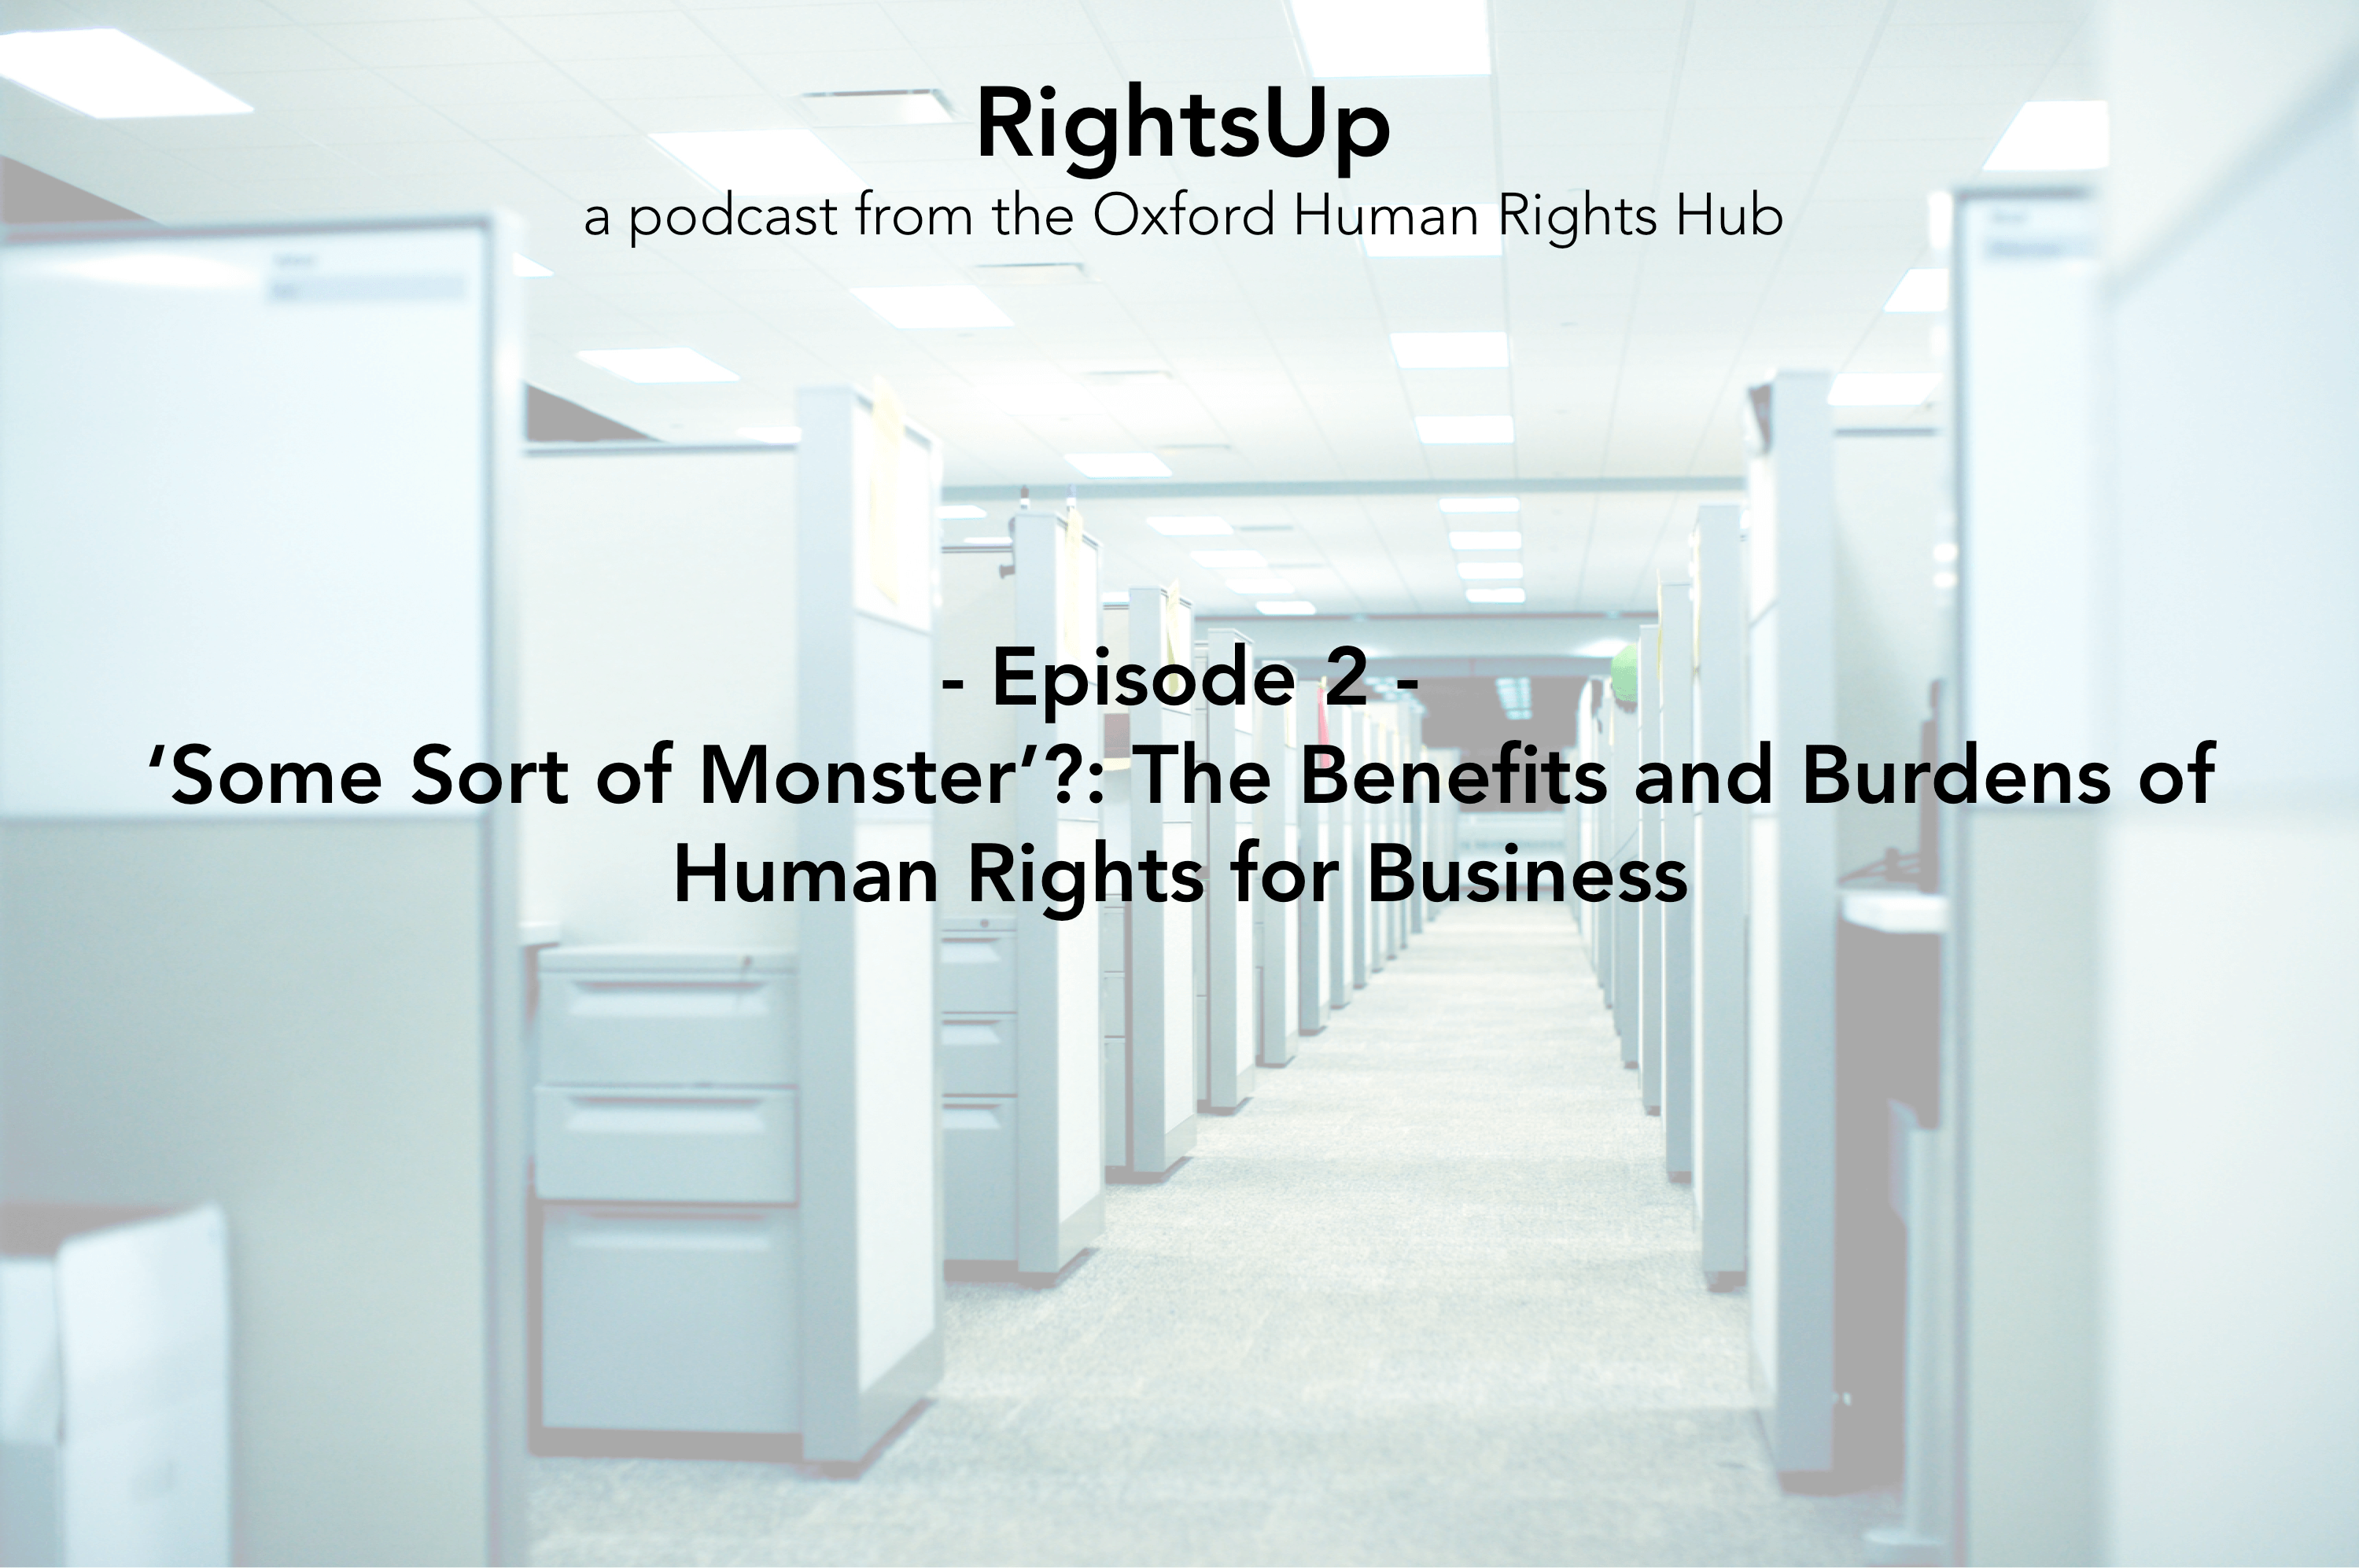 RightsUp – Episode 2 – 'Some Sort of Monster?': The Benefits and Burdens of Human Rights for Business